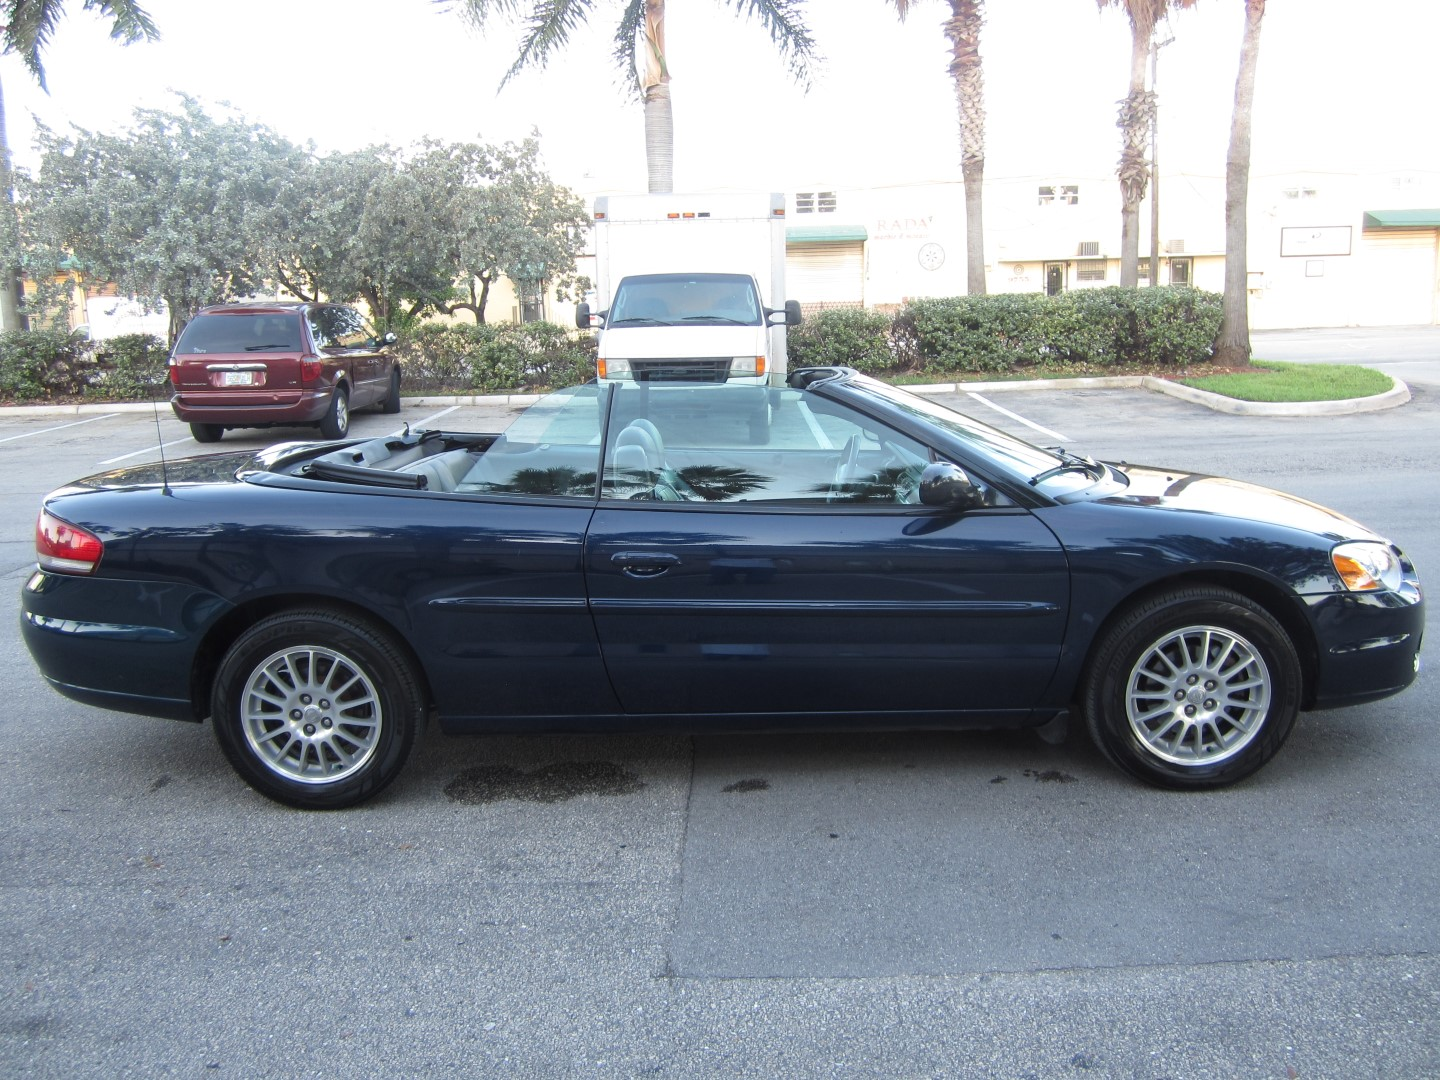 2005 chrysler sebring convertible base pictures to pin on. Black Bedroom Furniture Sets. Home Design Ideas